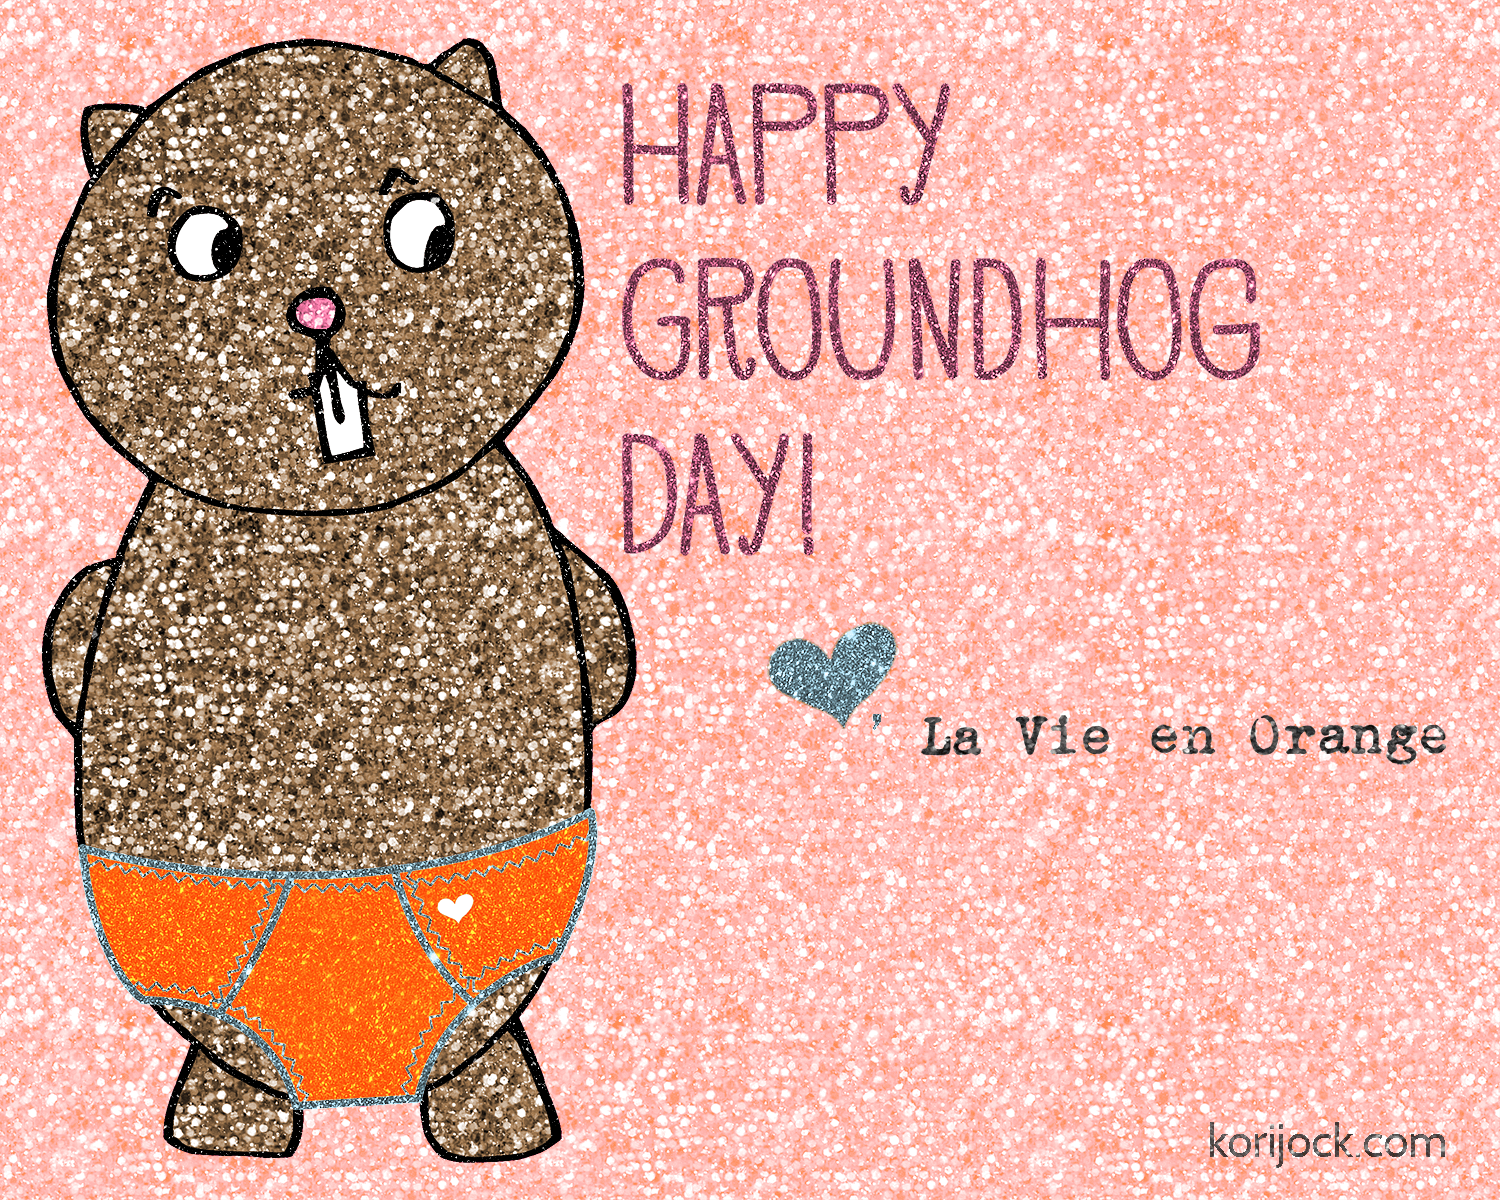 Glitter Groundhog - Happy Groundhog Day, Love La Vie en Orange | korijock.com